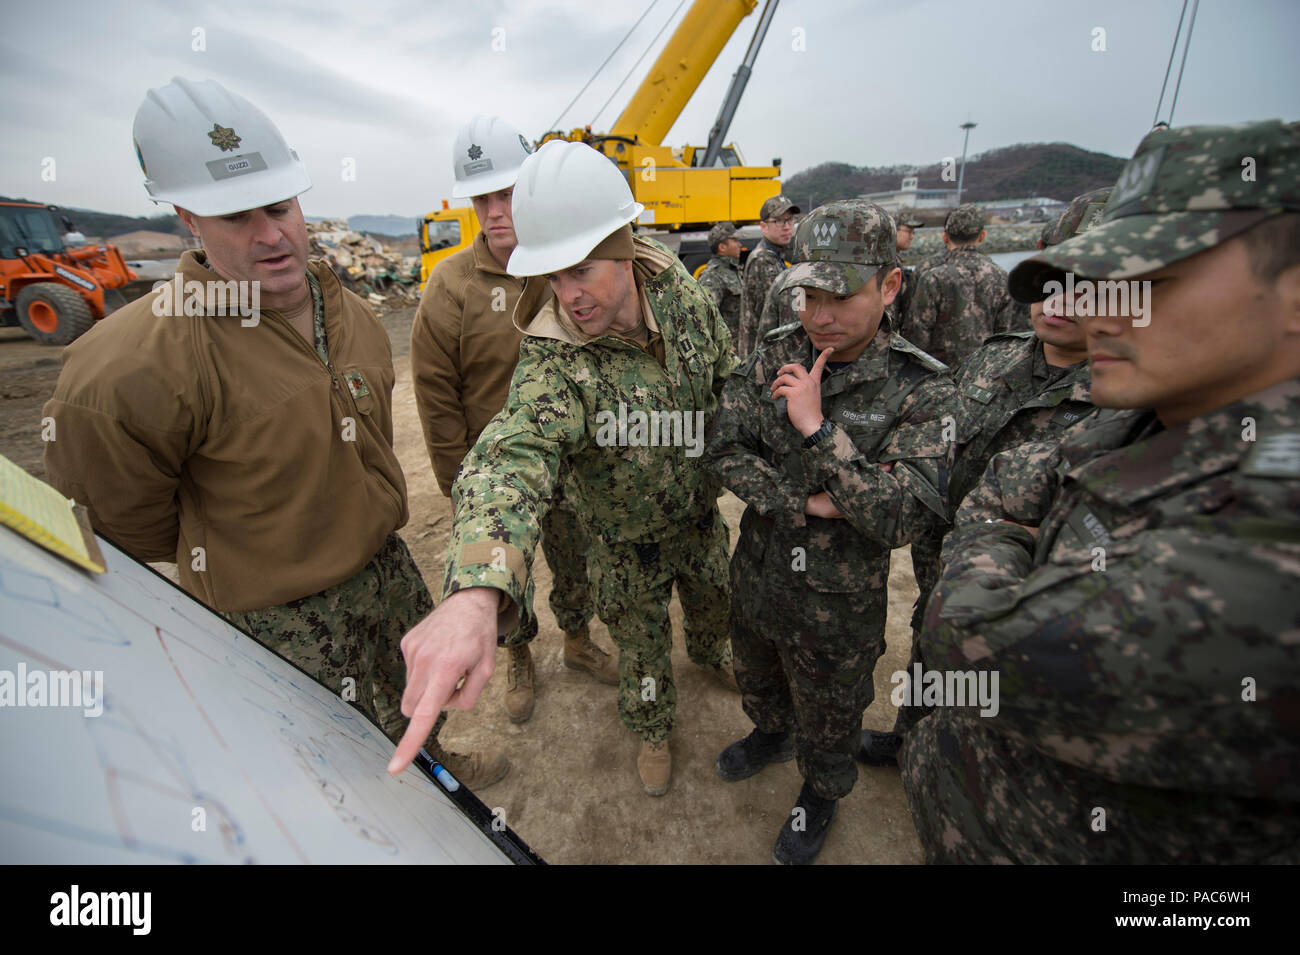 160308-N-HA376-048 JINHAE, Republic of Korea (March 8, 2016) - U.S. Navy Lt. Joshua Baker, executive officer of Underwater Construction Team (UCT) 2, briefs 30th Naval Construction Regiment and Republic of Korea (ROK) Seabees on a UCT 2 and ROK diver underwater project during exercise Foal Eagle 2016. The UCT 2 and ROK Seabee divers are working together to practice crane operations with divers in the water and underwater concrete block placement. Foal Eagle is an annual, bilateral training exercise designed to enhance the readiness of U.S. and ROK forces, and their ability to work together dur - Stock Image